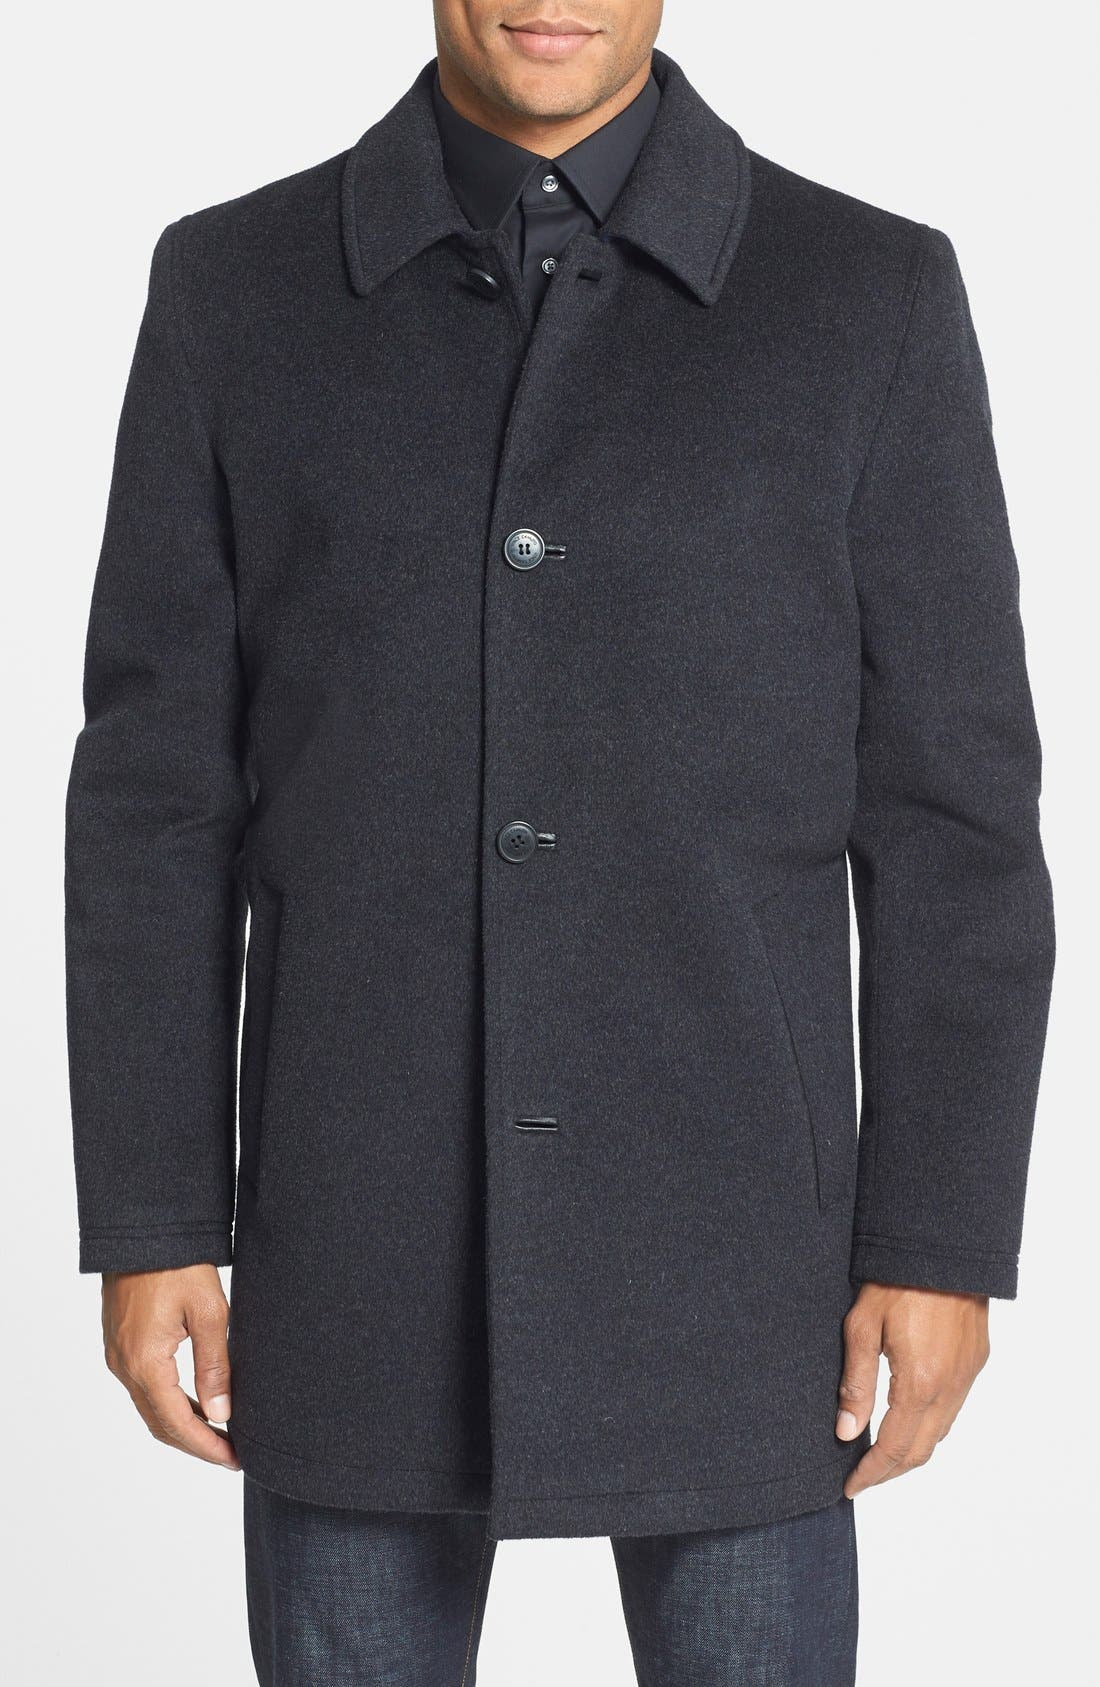 Vince Camuto Water Repellent Wool Blend Car Coat | Nordstrom